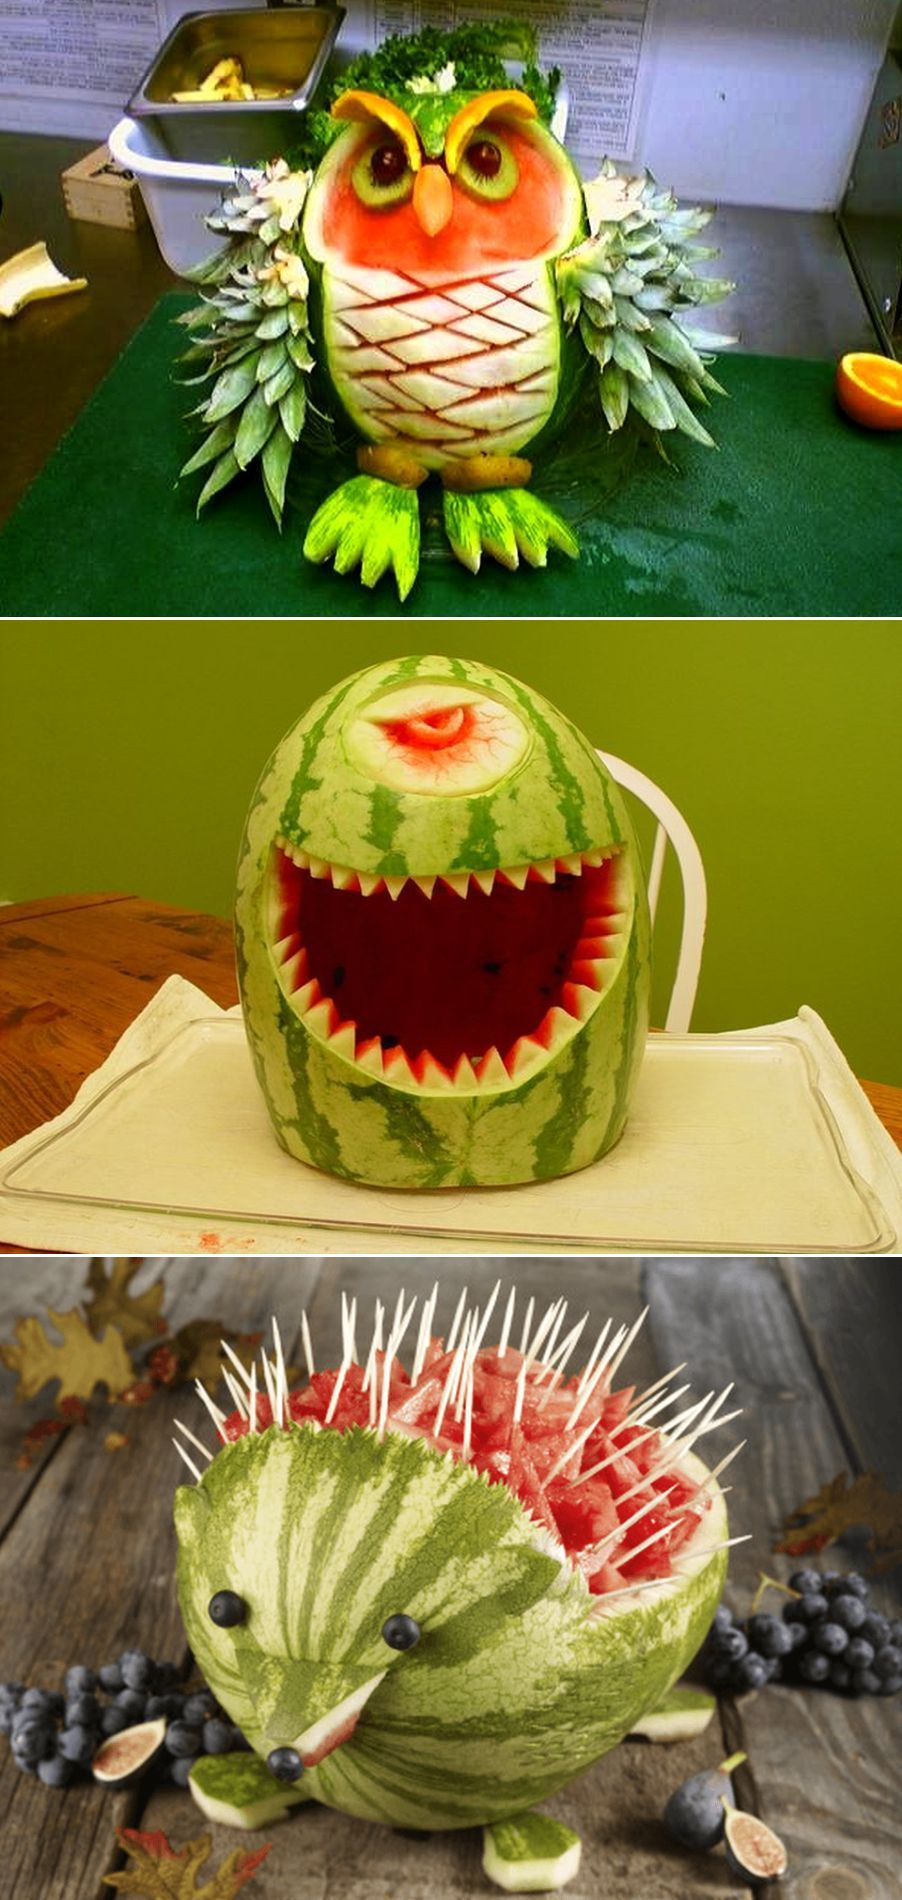 15 Watermelon Carvings to Replace AgeOld Halloween